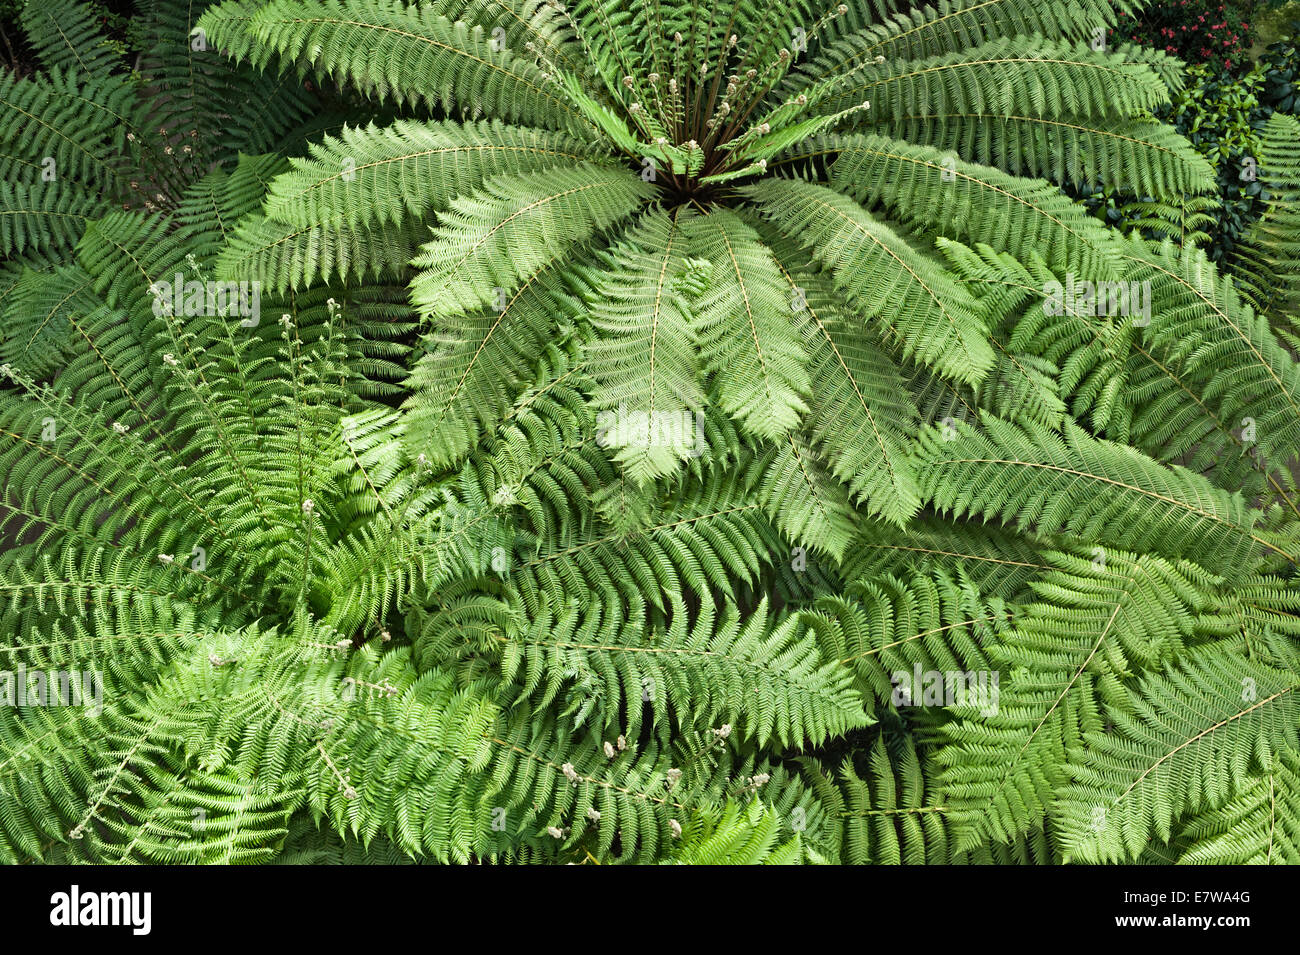 Royal Botanic Gardens, Kew, London.  Ferns in the Temperate House, currently closed for restoration - Stock Image